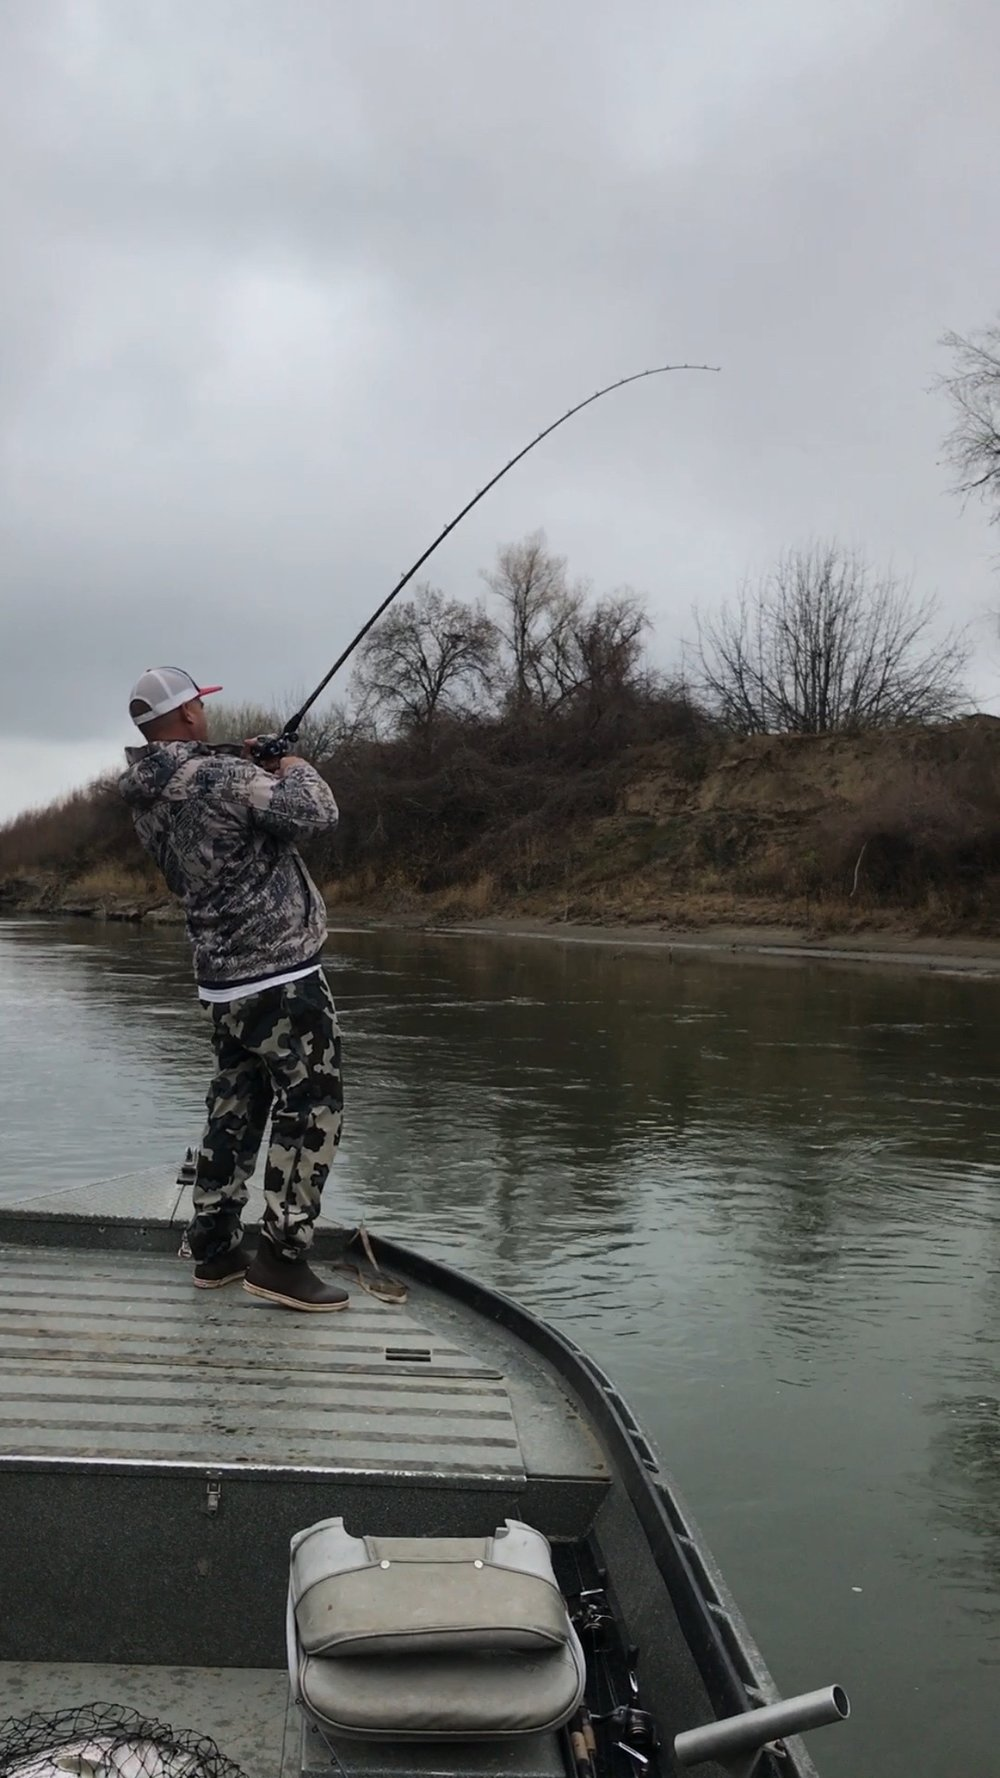 Sacramento River 20 pound striped bass double hook up with client Eric Robison from Las Vegas, NV on January 6, 2018. Fishing guide Mike Rasmussen takes a pic after landing his half of the double header. Mike's fish can be seen laying in the net at the bottom of the photo.